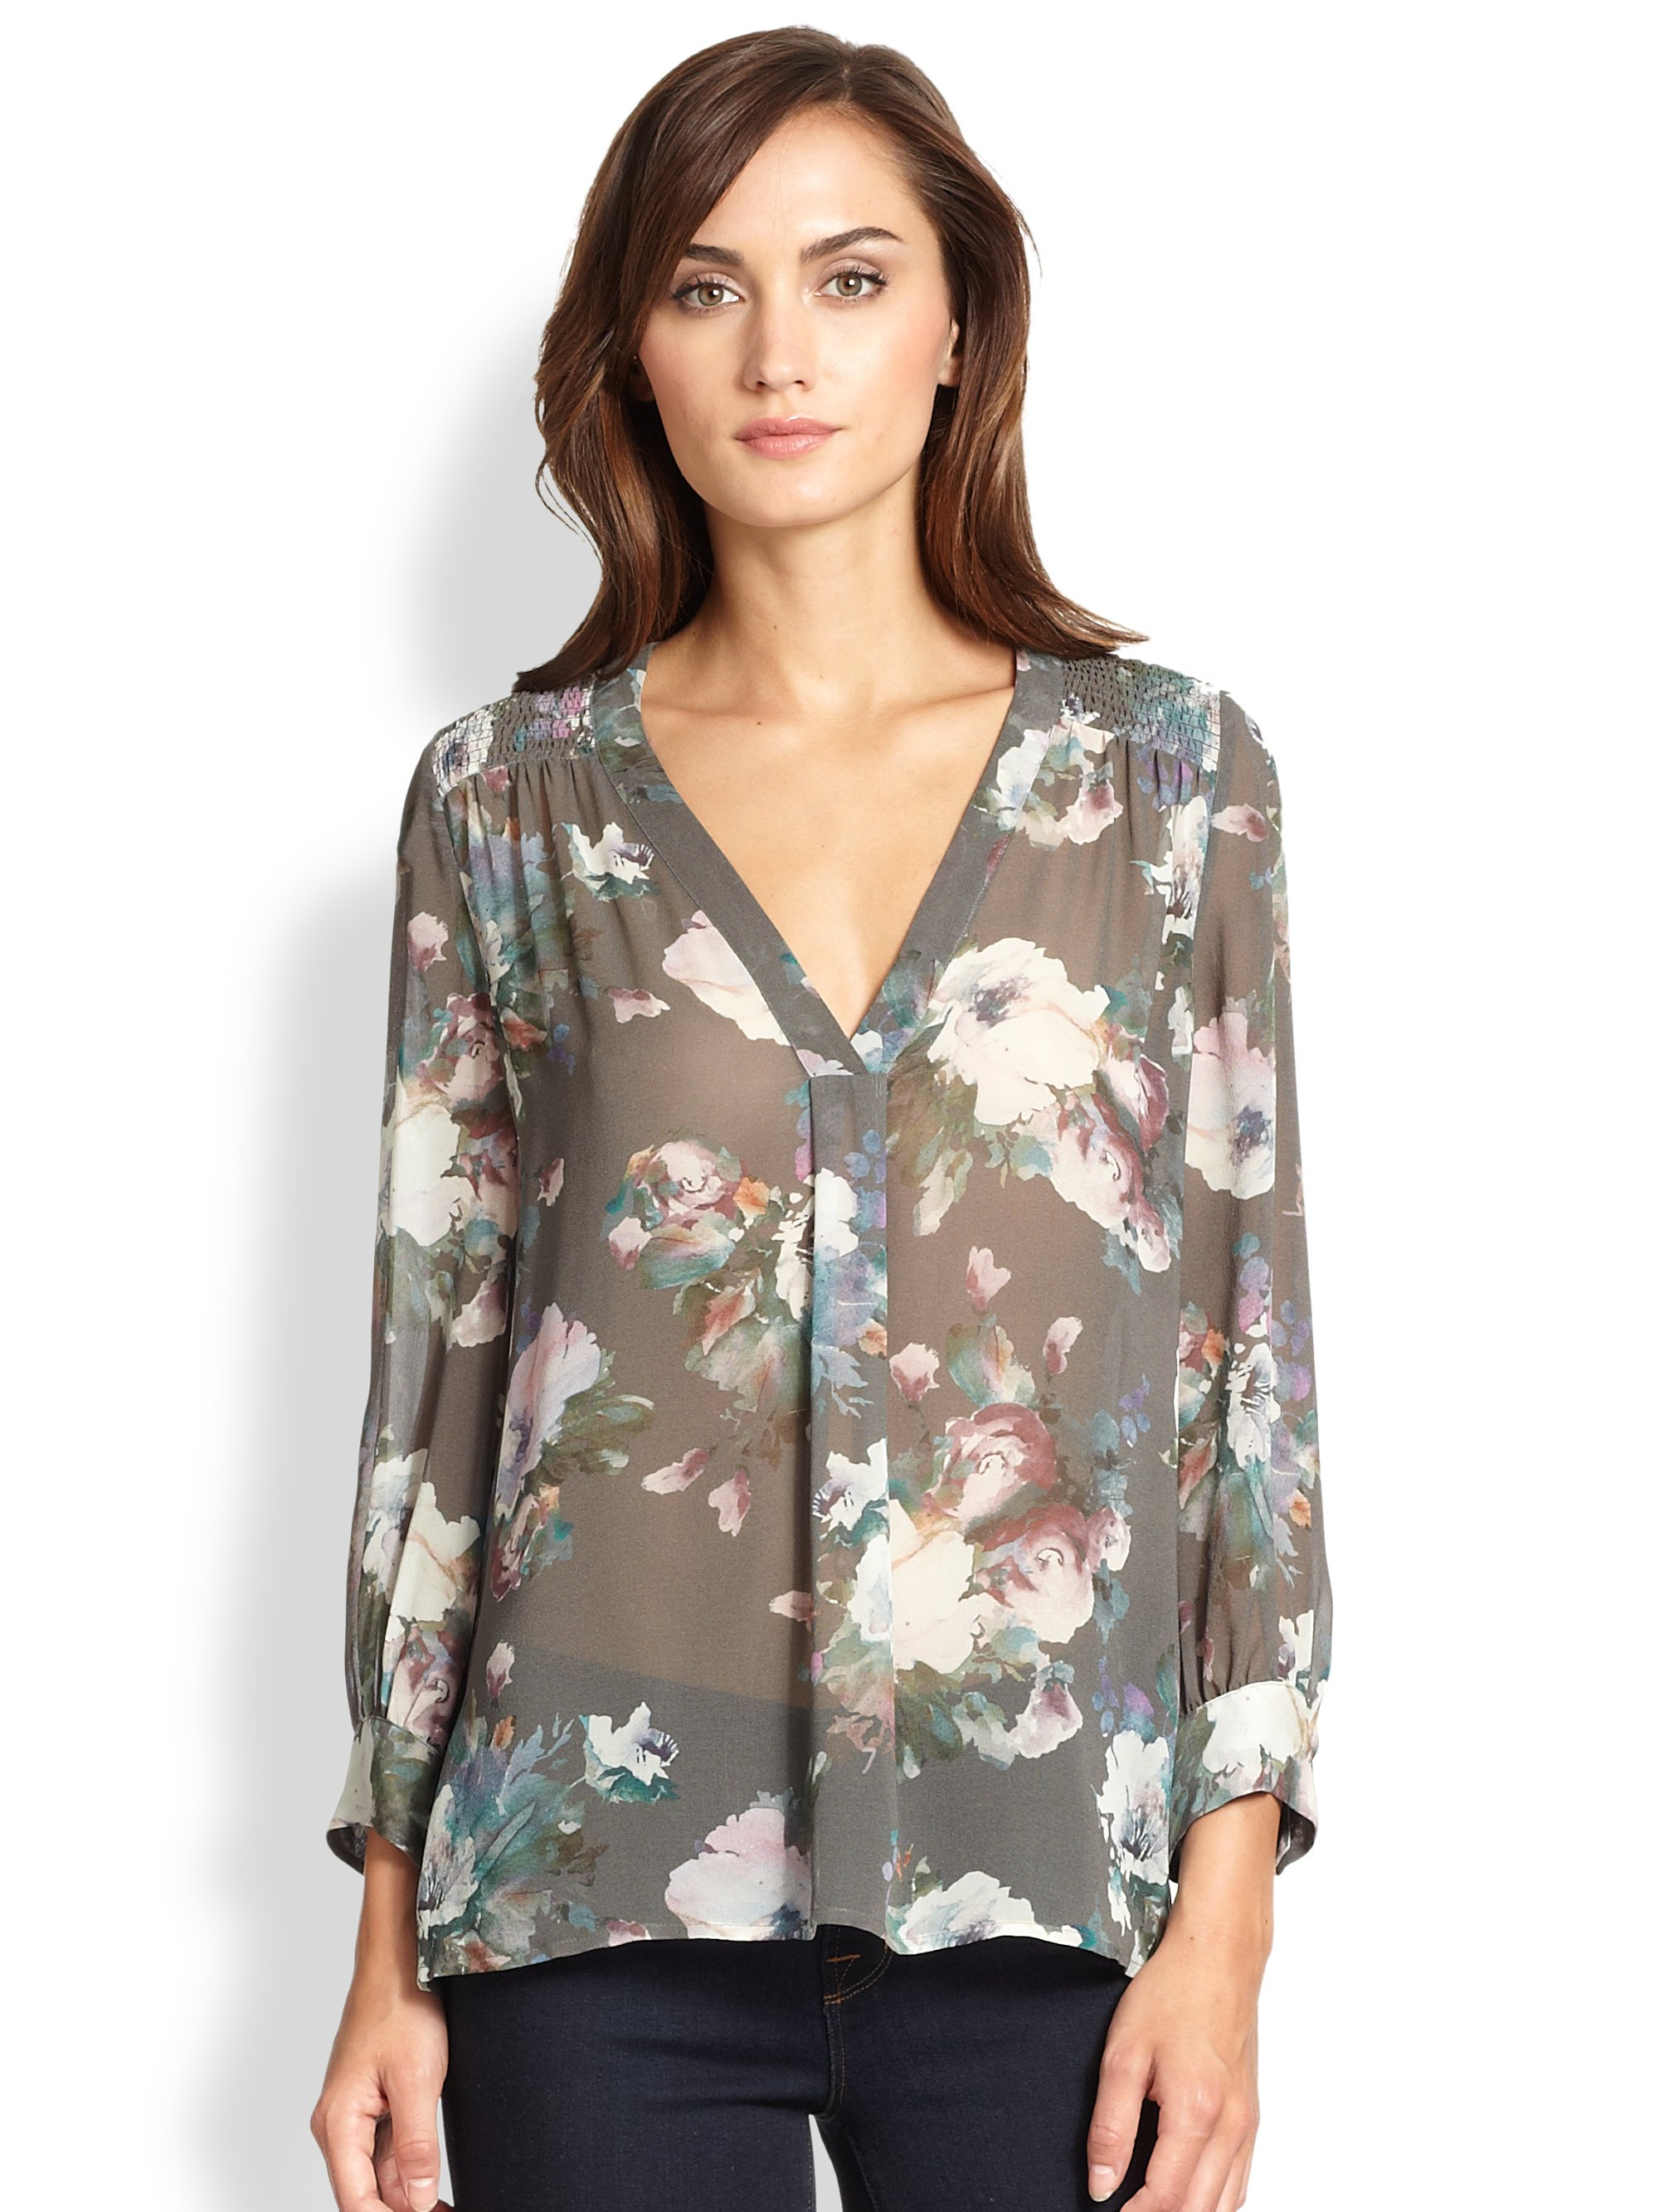 027894ce89f151 Lyst - Joie Aceline Sheer Silk Floral-Print Blouse in Gray